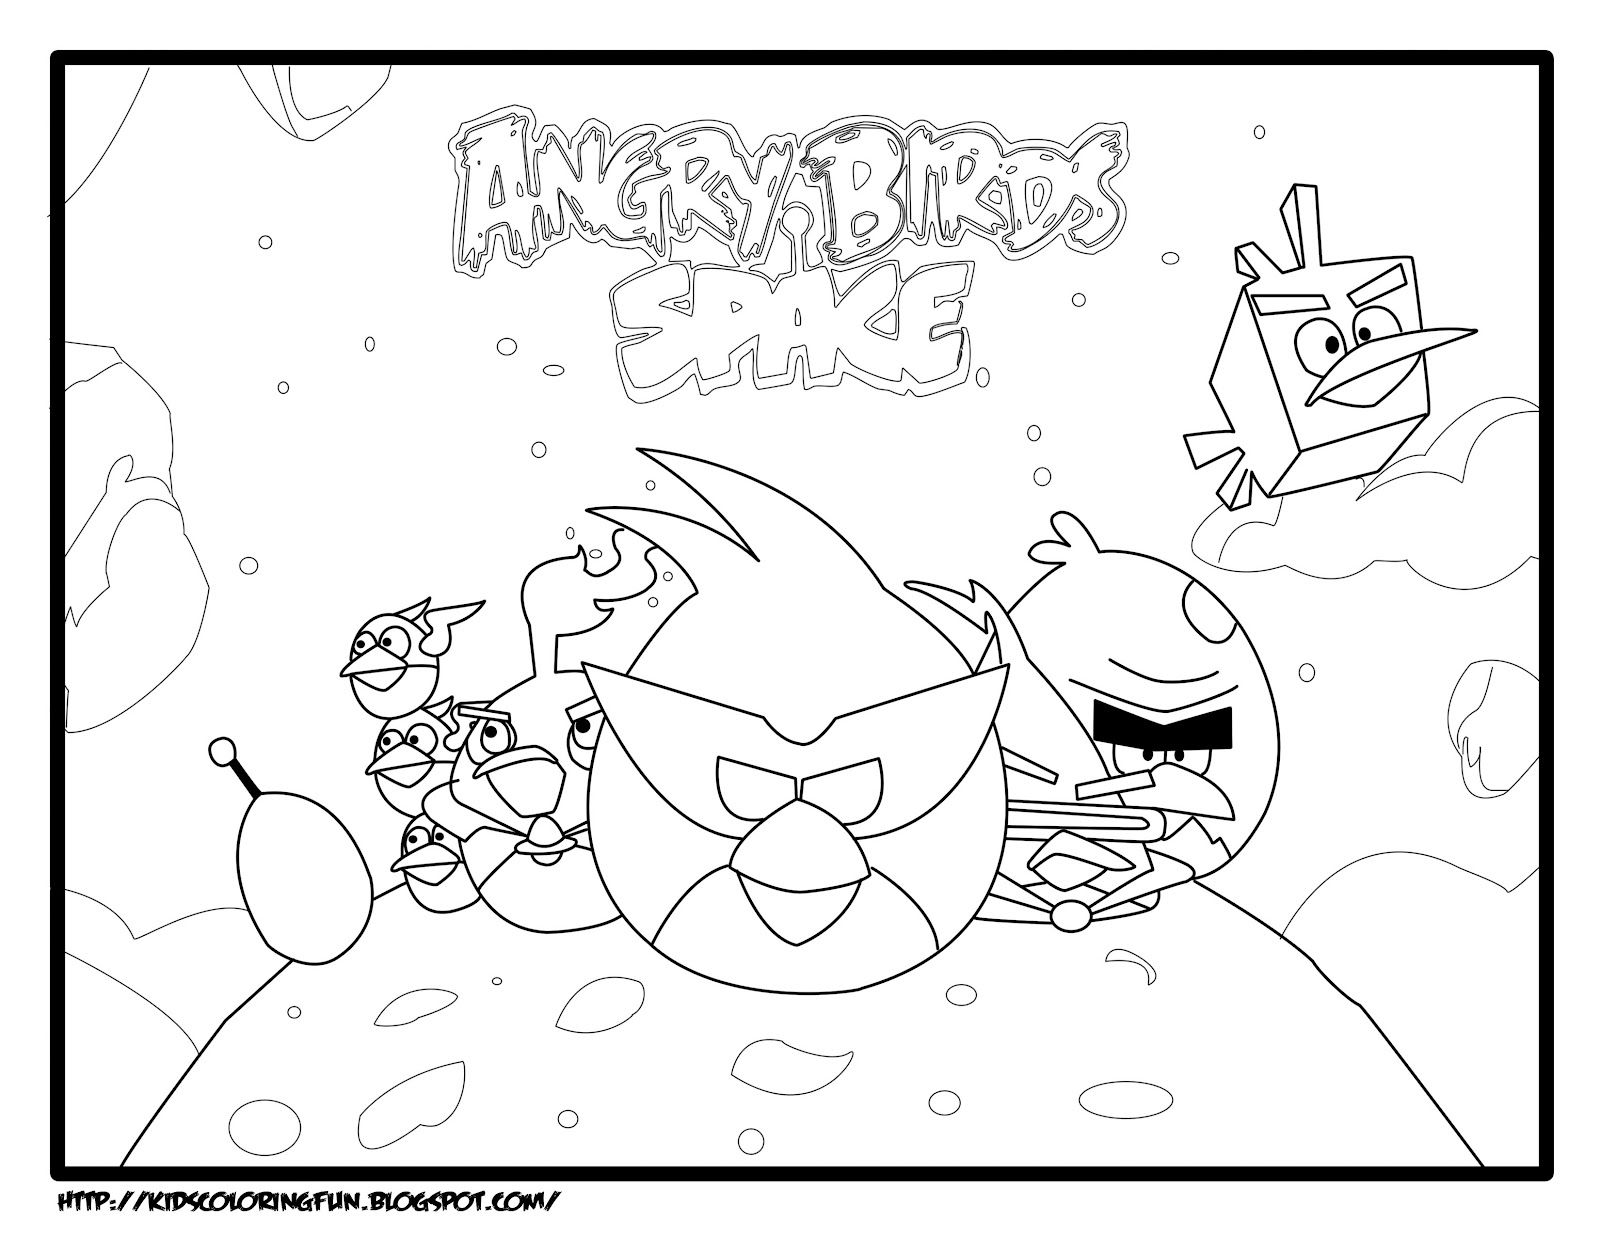 Free Angry Birds Space Coloring Pages | Craft Ideas | Pinterest